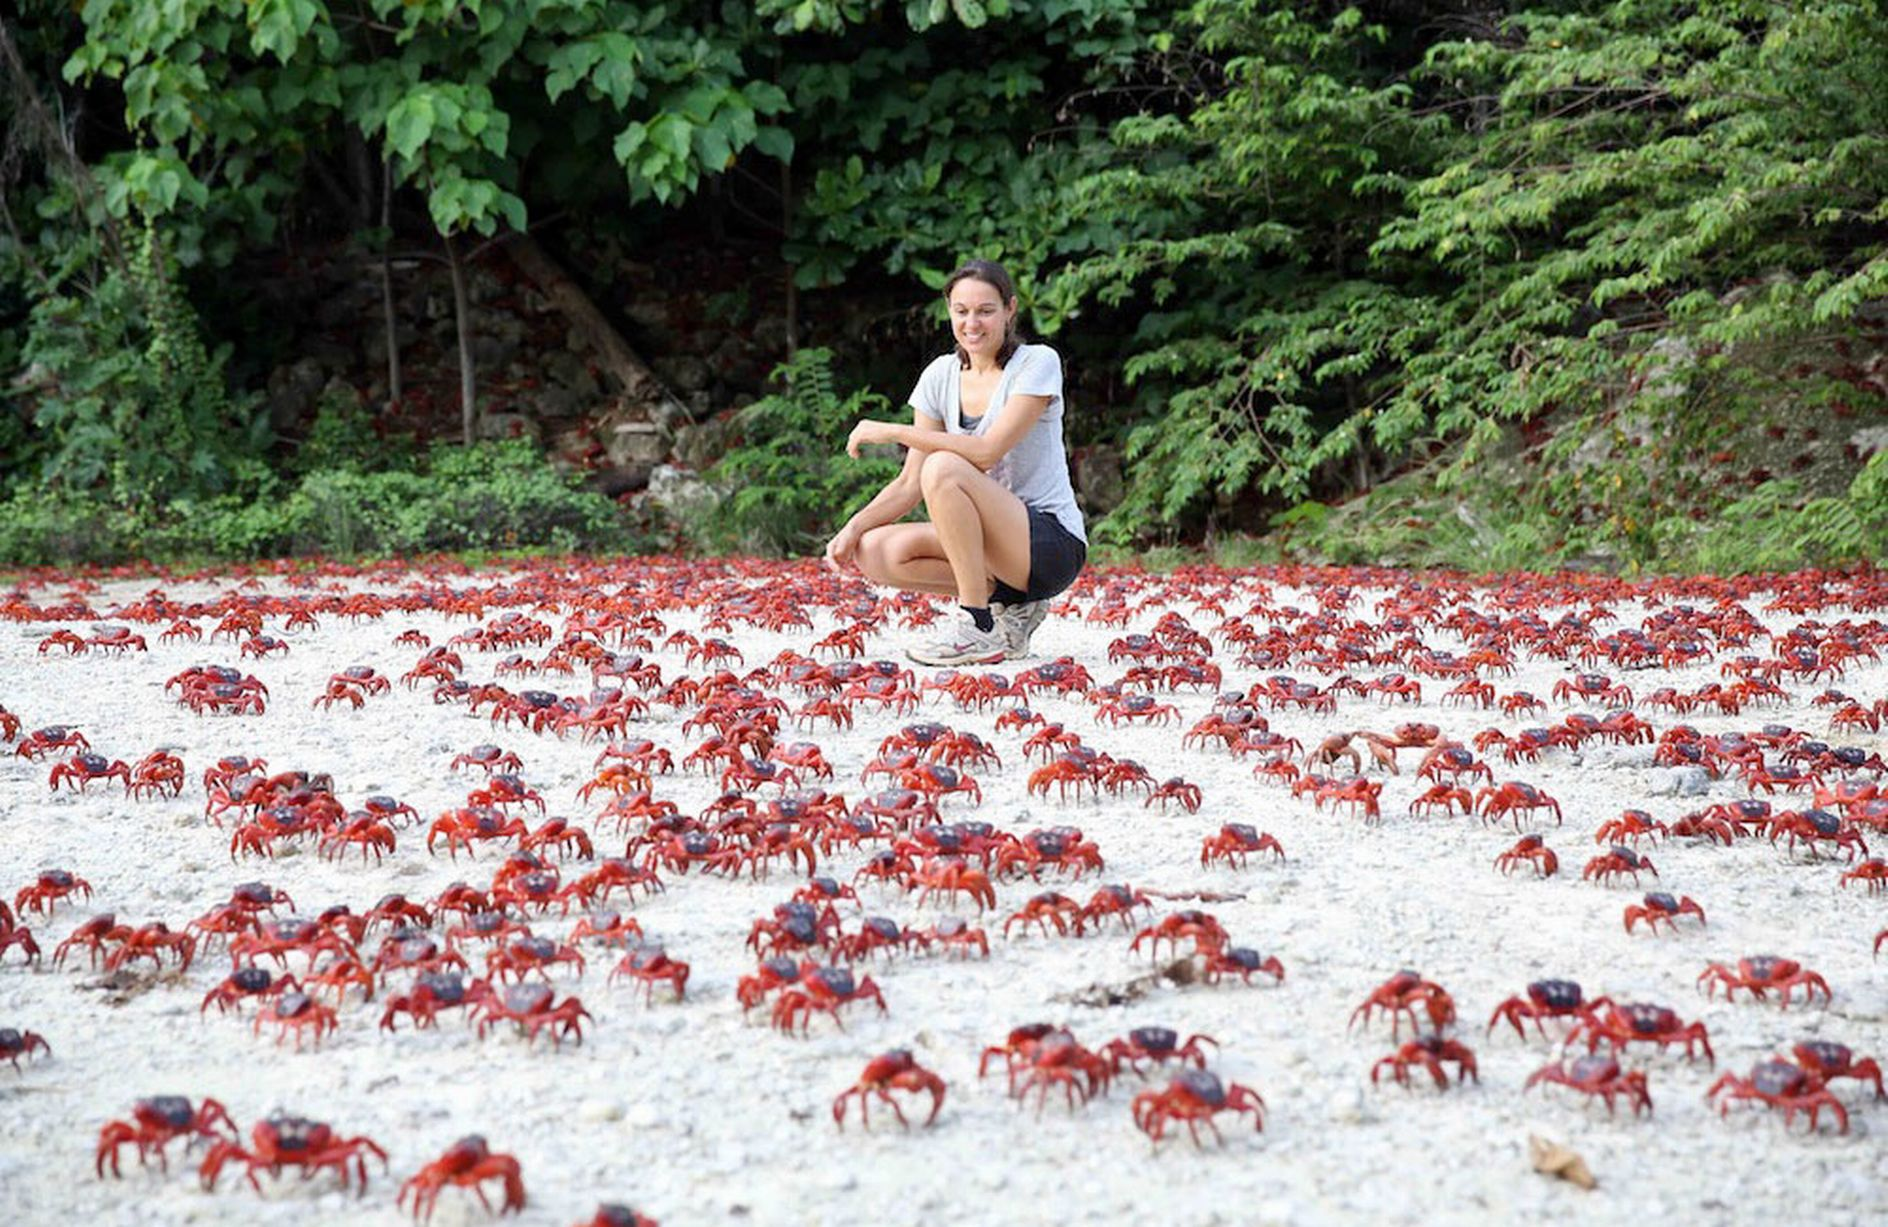 Migrating-red-crabs-in-Christmas-Island-Australia-MAIN